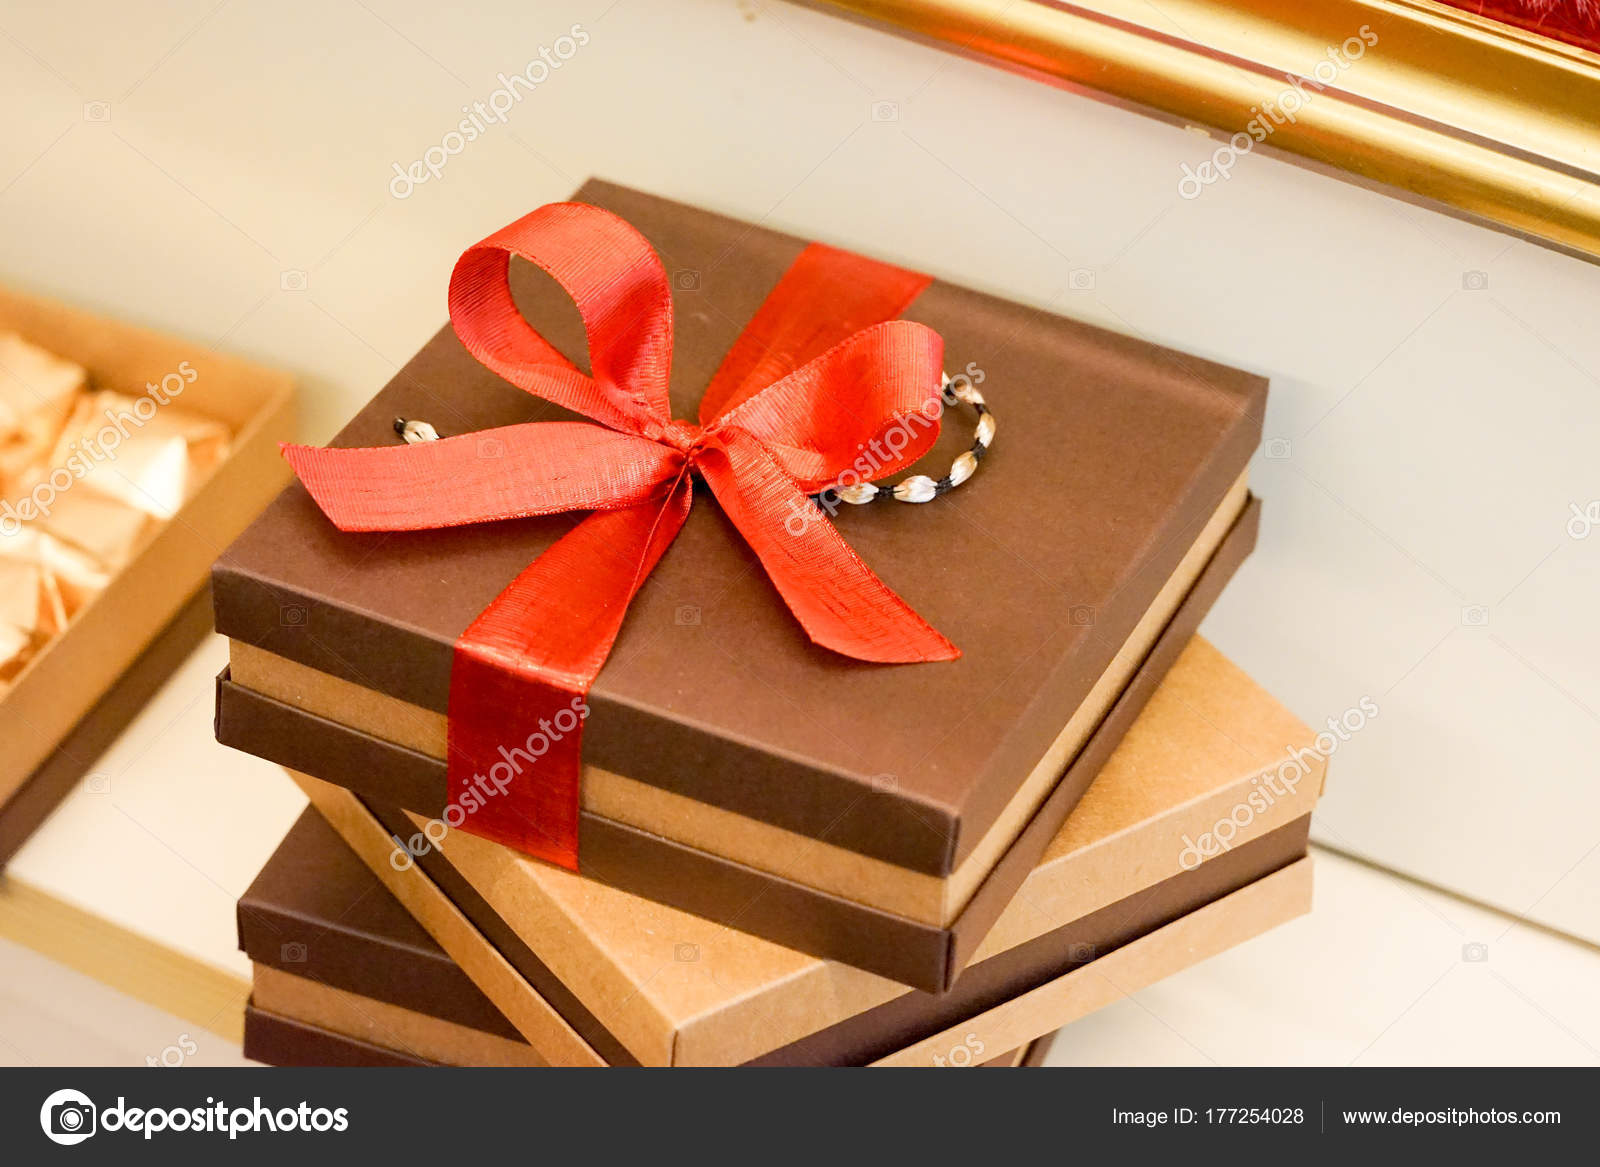 Christmas Gift Packages.Christmas Tree Ornaments Gift Packages Stock Photo